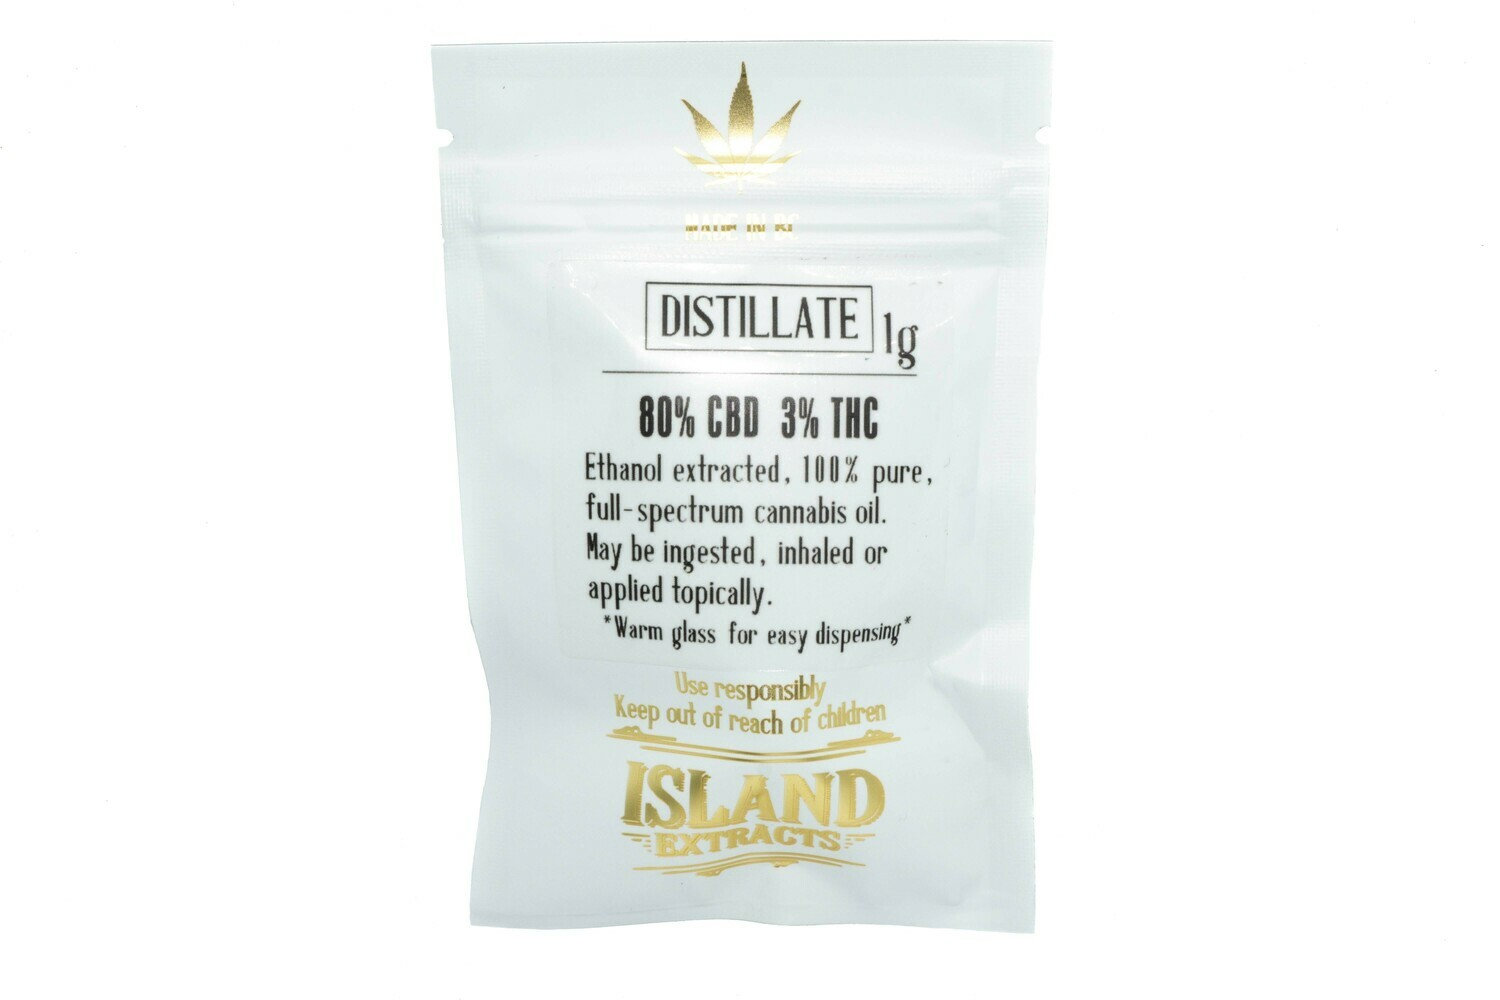 Distallate CBD (1g) Syringe By Island Extracts